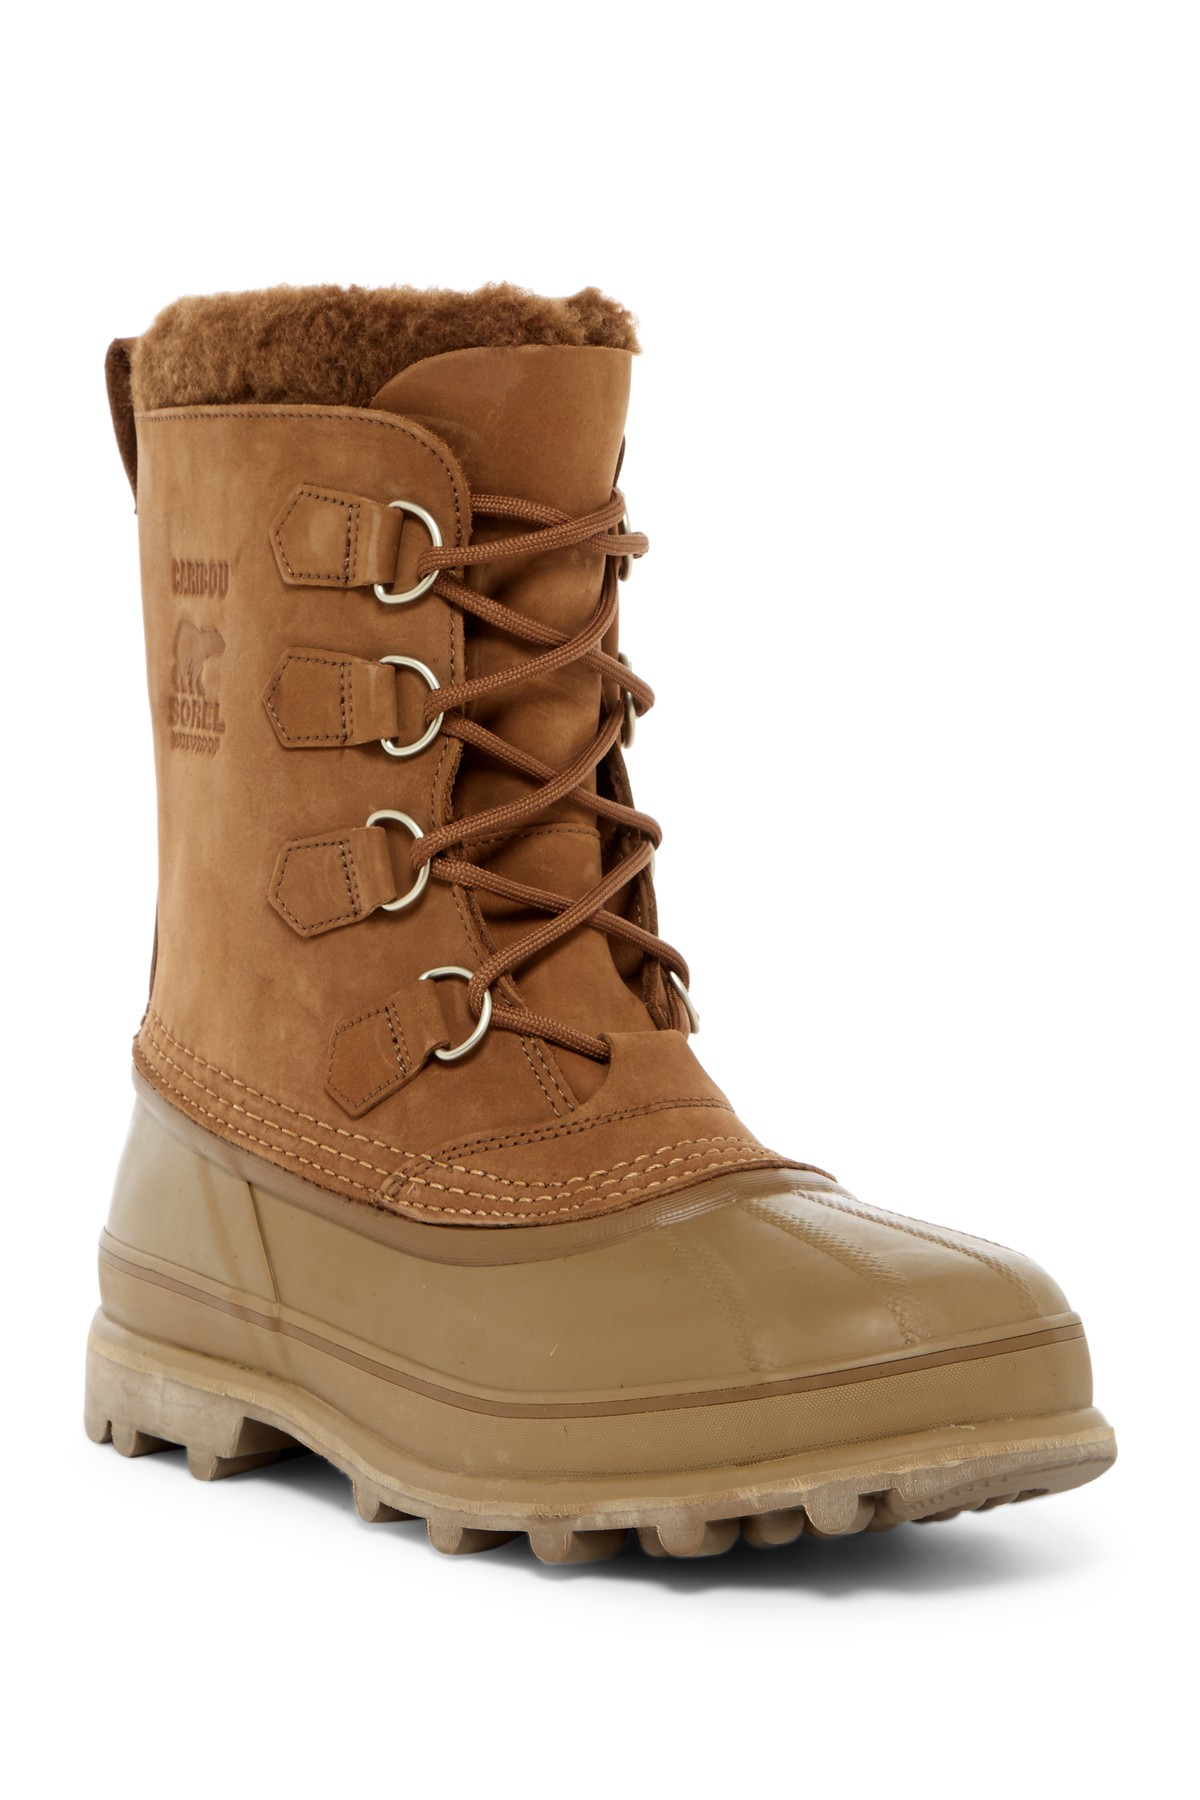 1e3cb933c11 Nordstrom Rack  Men s SOREL Boots – 47% Off! – Wear It For Less